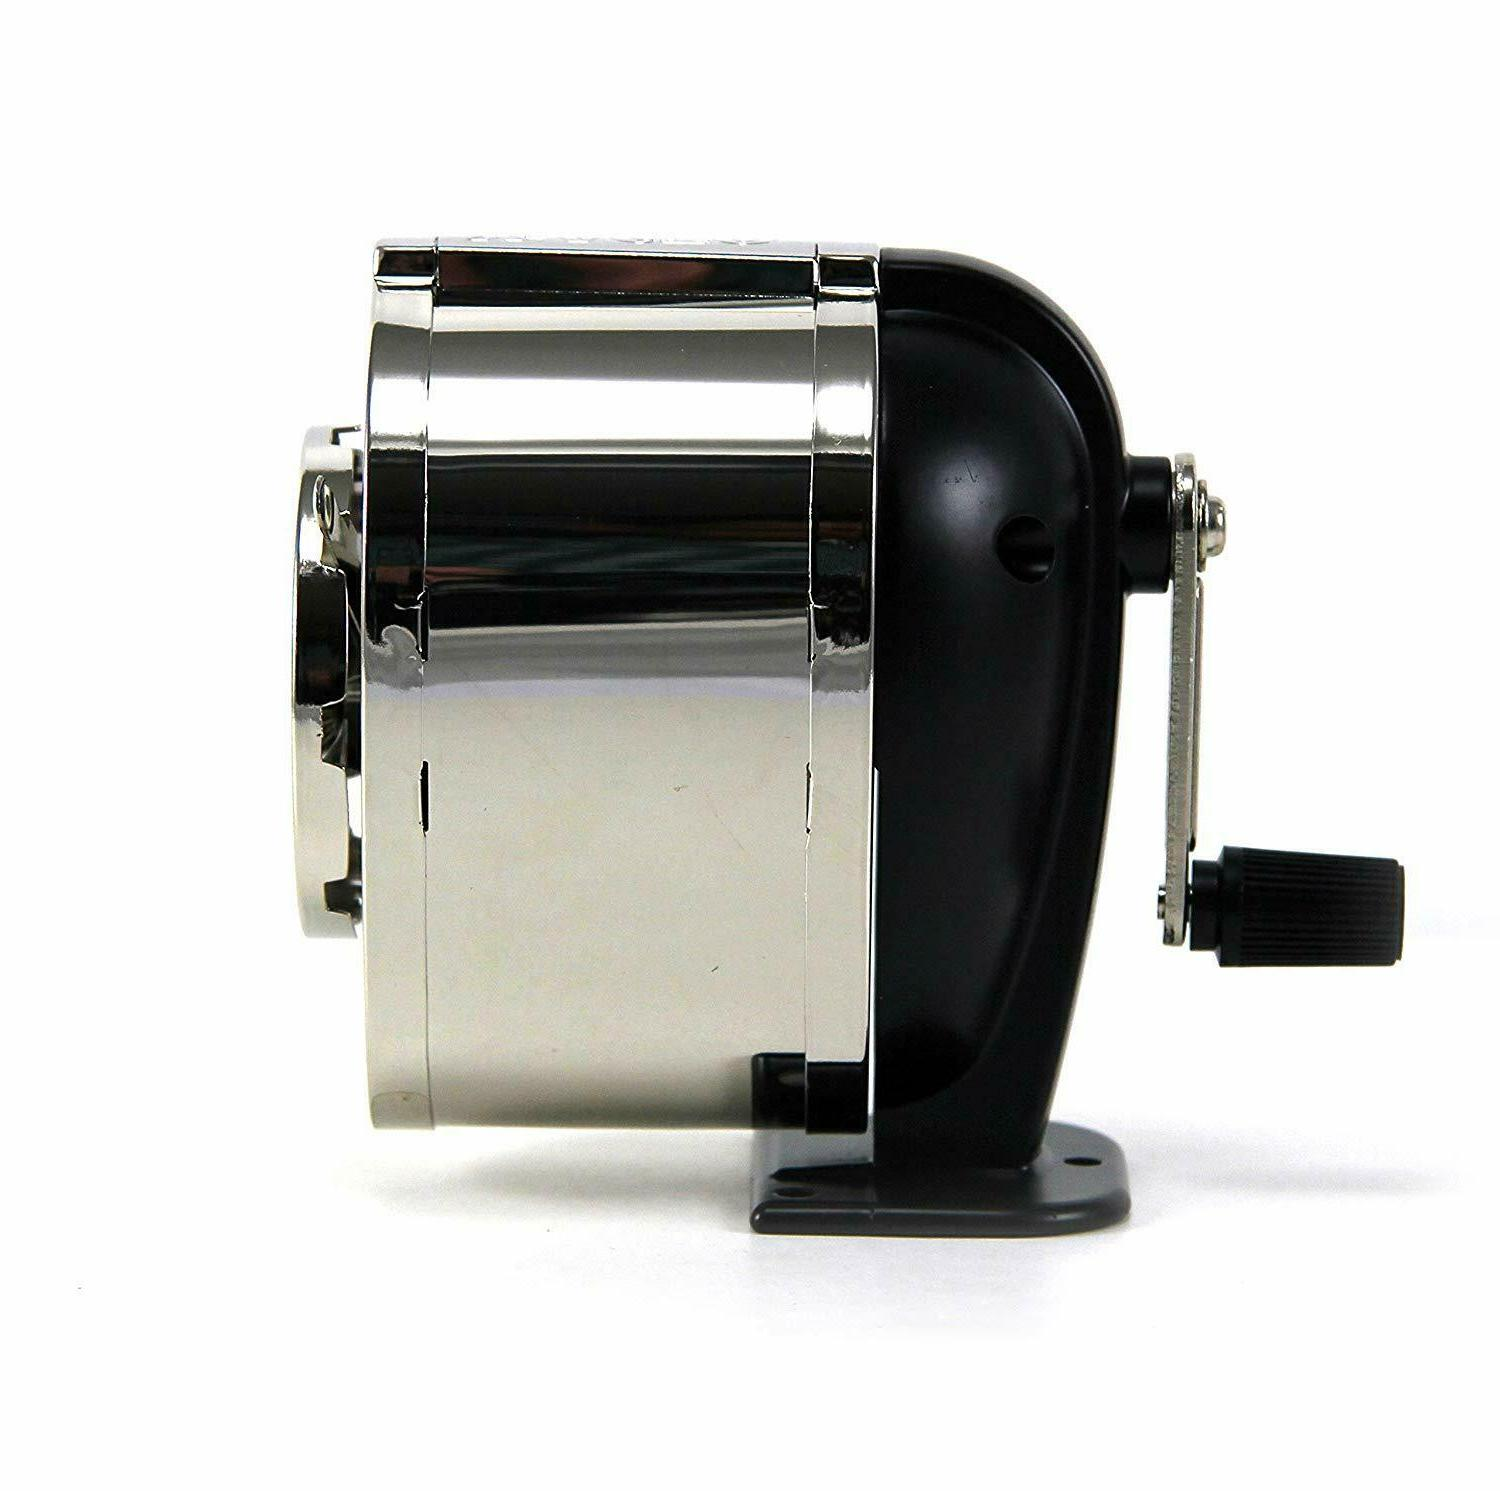 Pencil Sharpener Mountable on wall or